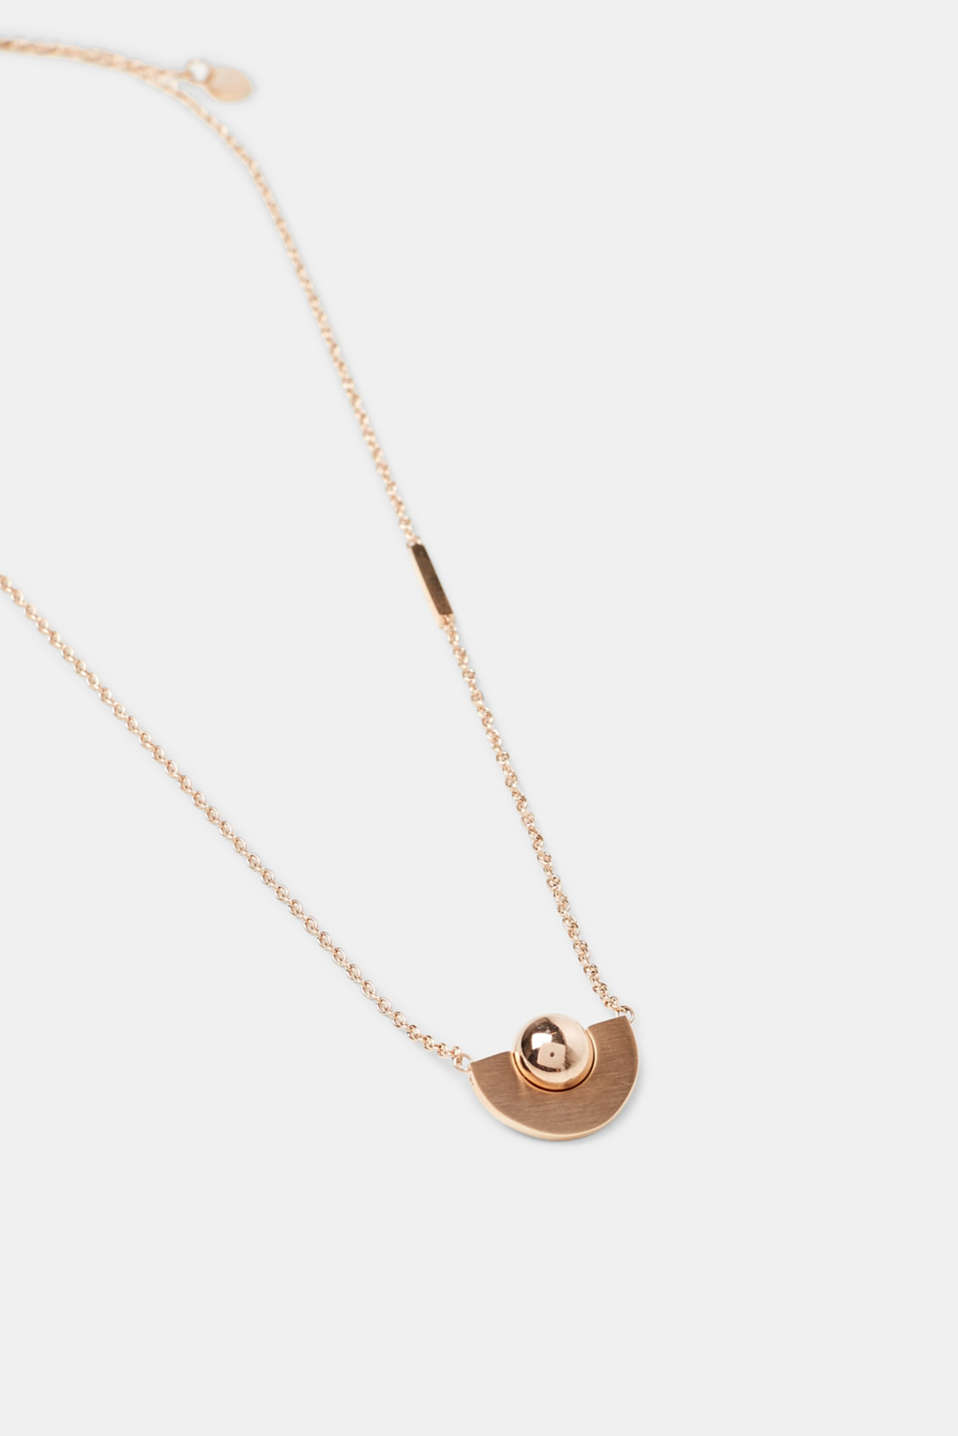 Fine necklace with rose gold pendant